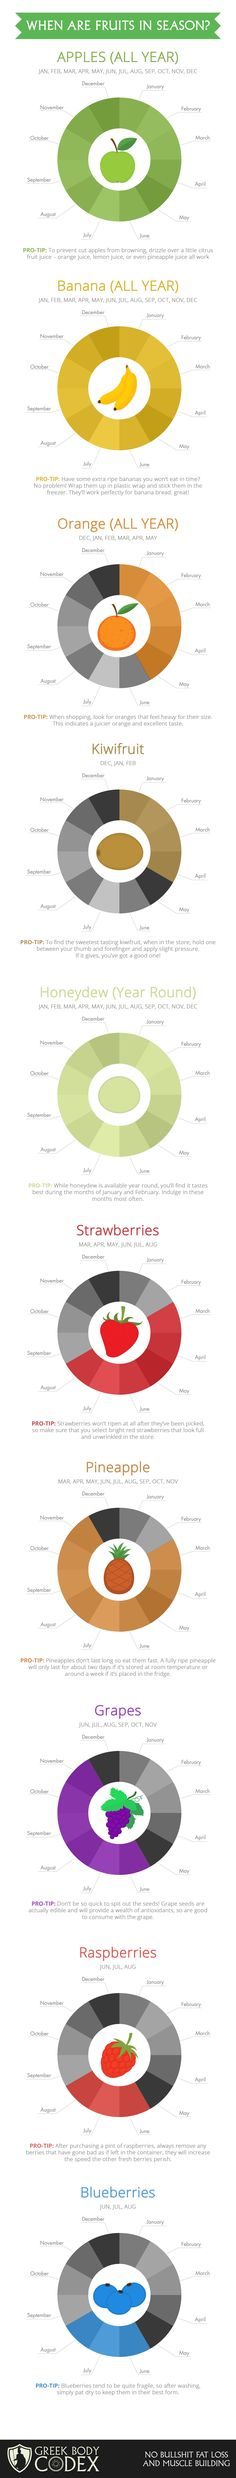 When Are Fruits and Vegetables in Season? infographic